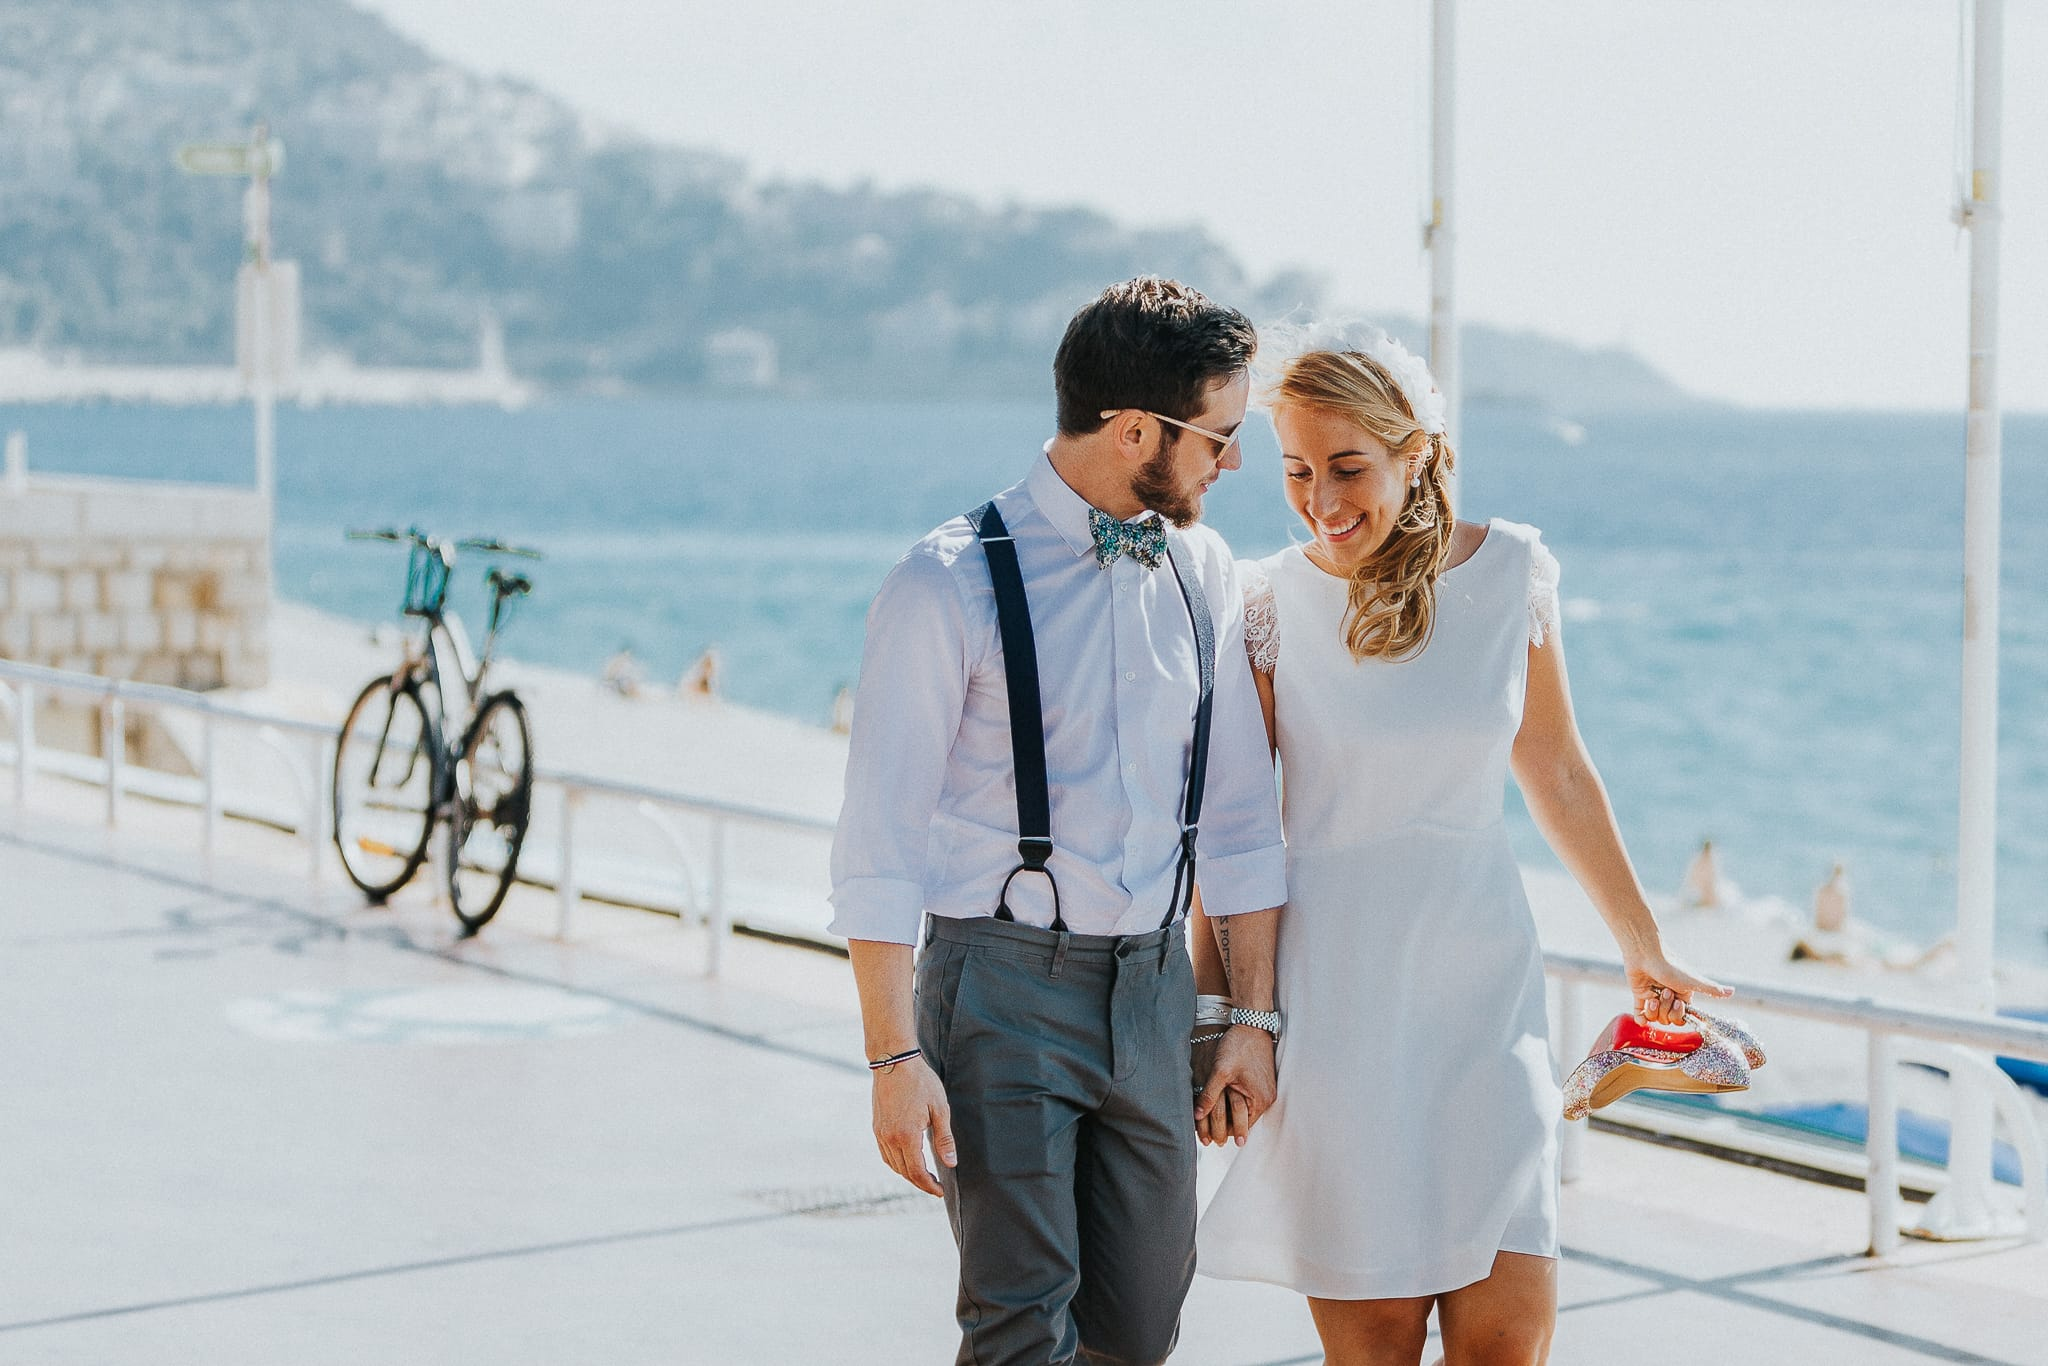 Costi-Moiceanu-Photographer-CM-Photography-Wedding-Mariage-French-Riviera-Cote-D-Azur-Alpes-Maritimes-18